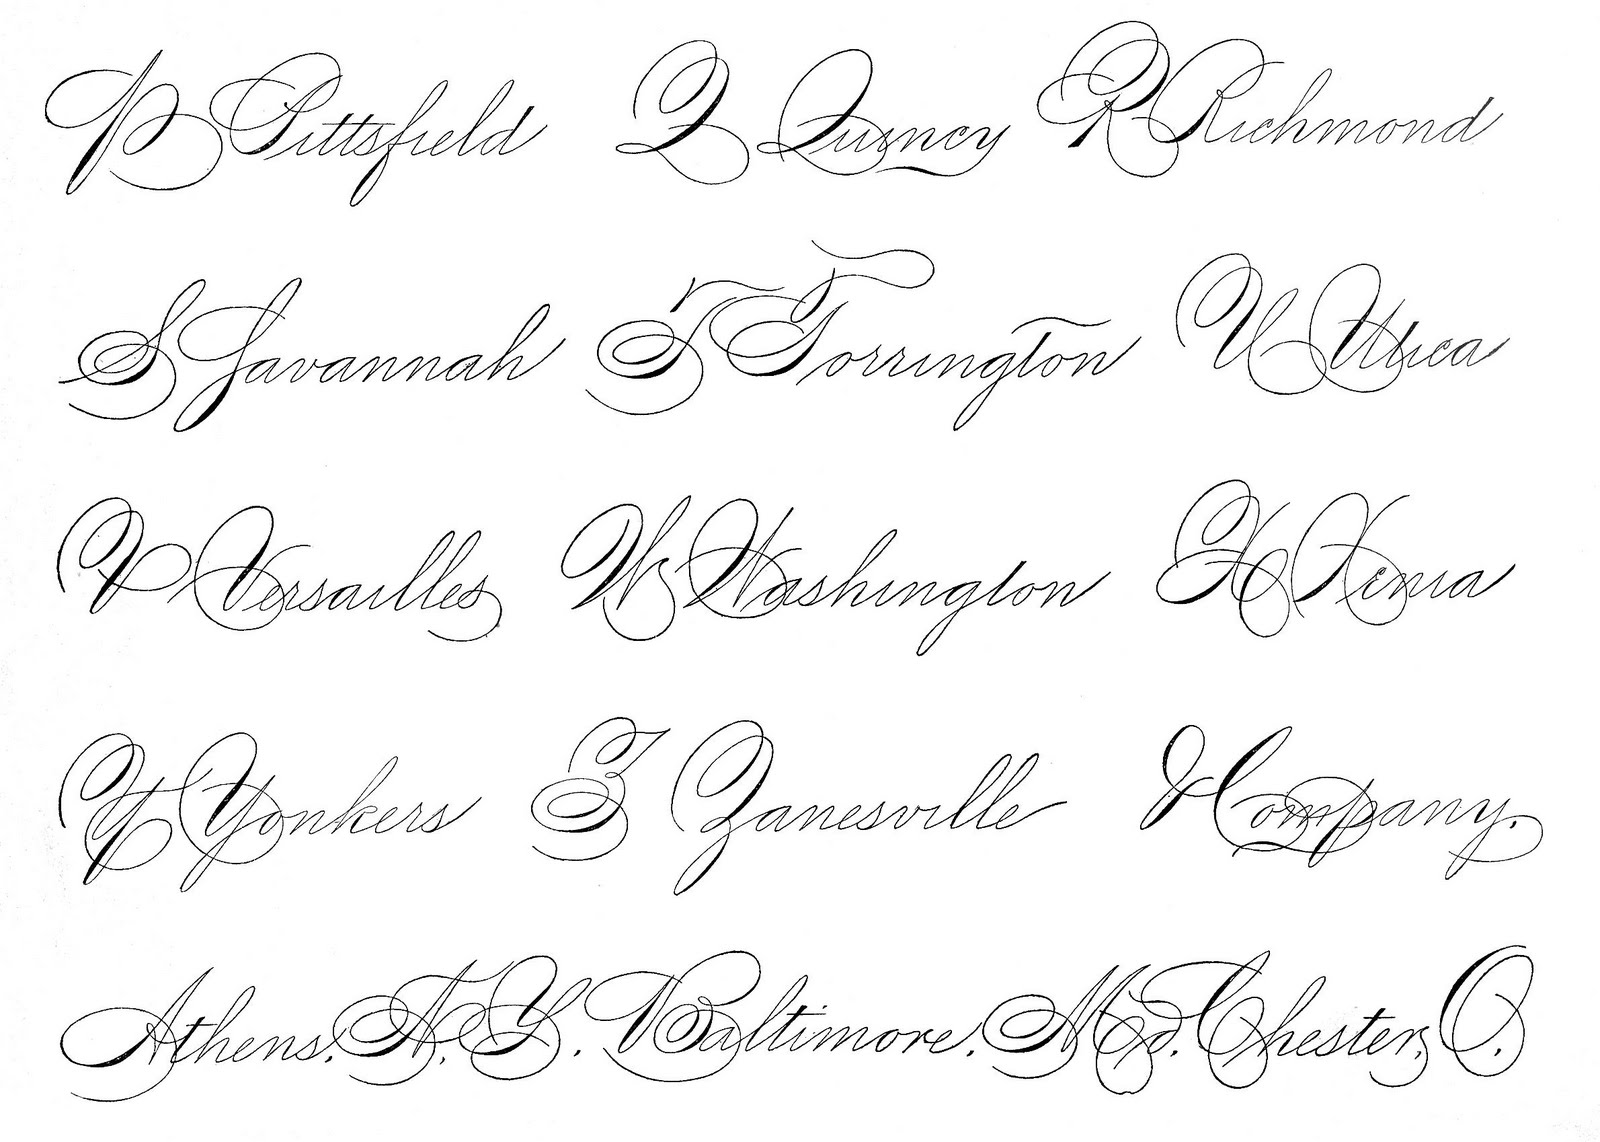 Spencerian saturday pen flourished words the graphics Handwriting calligraphy